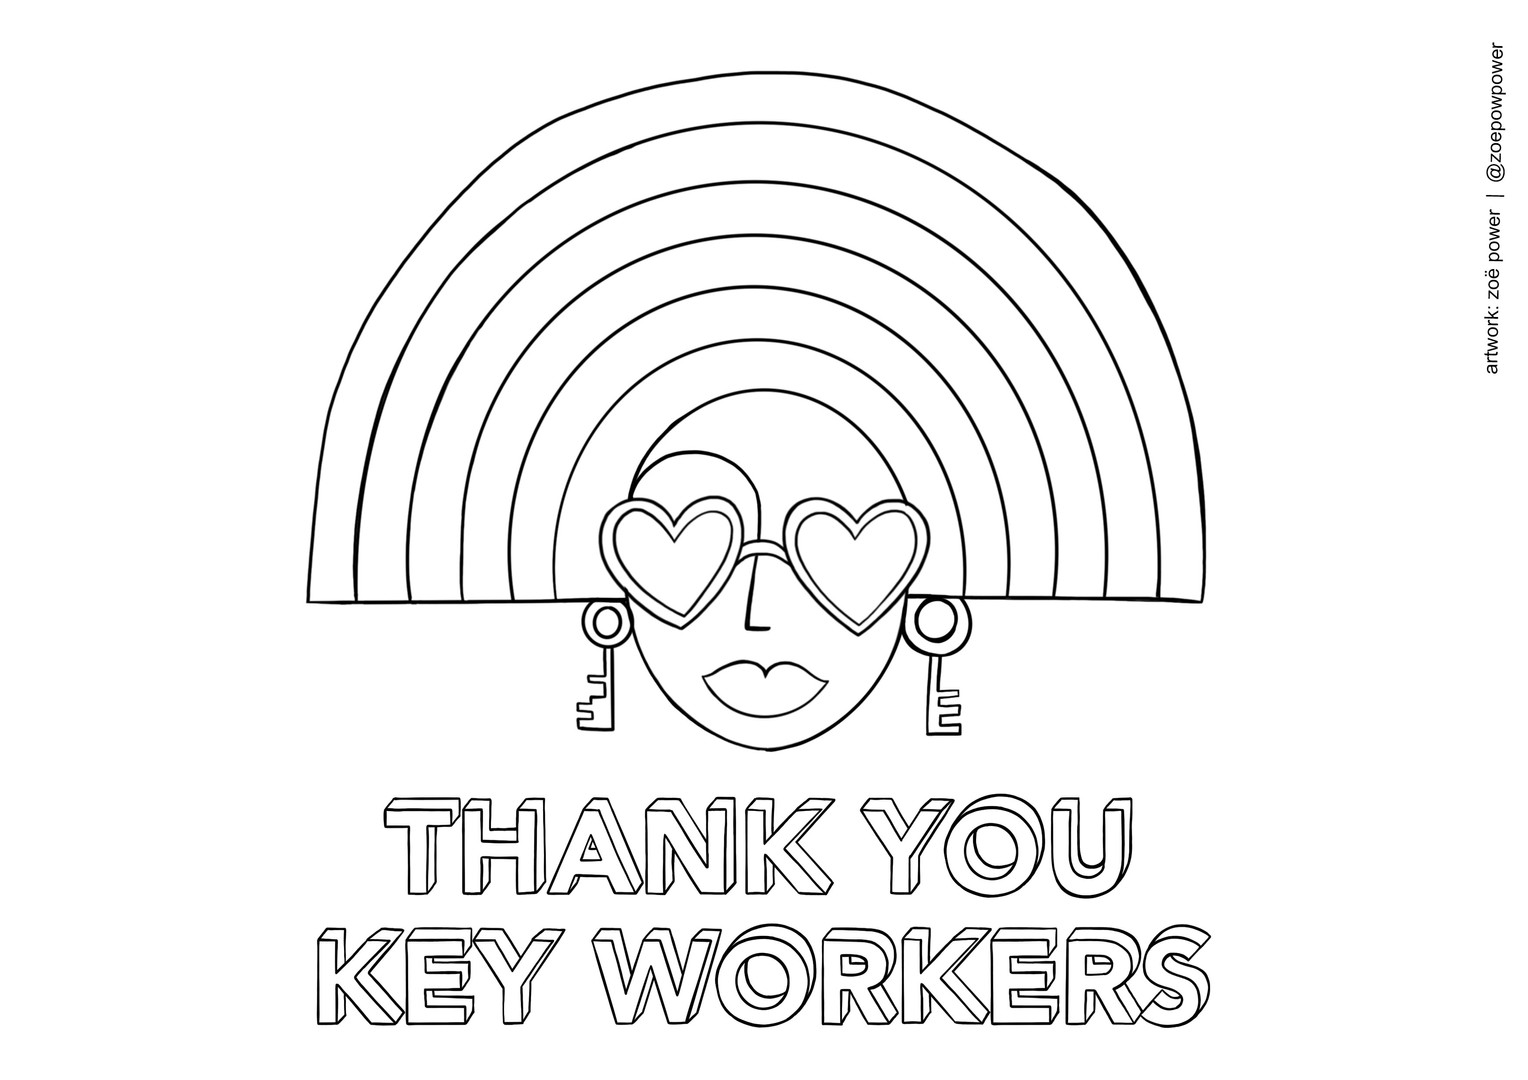 Colouring In sheet -  THANK YOU KEY WORKERS